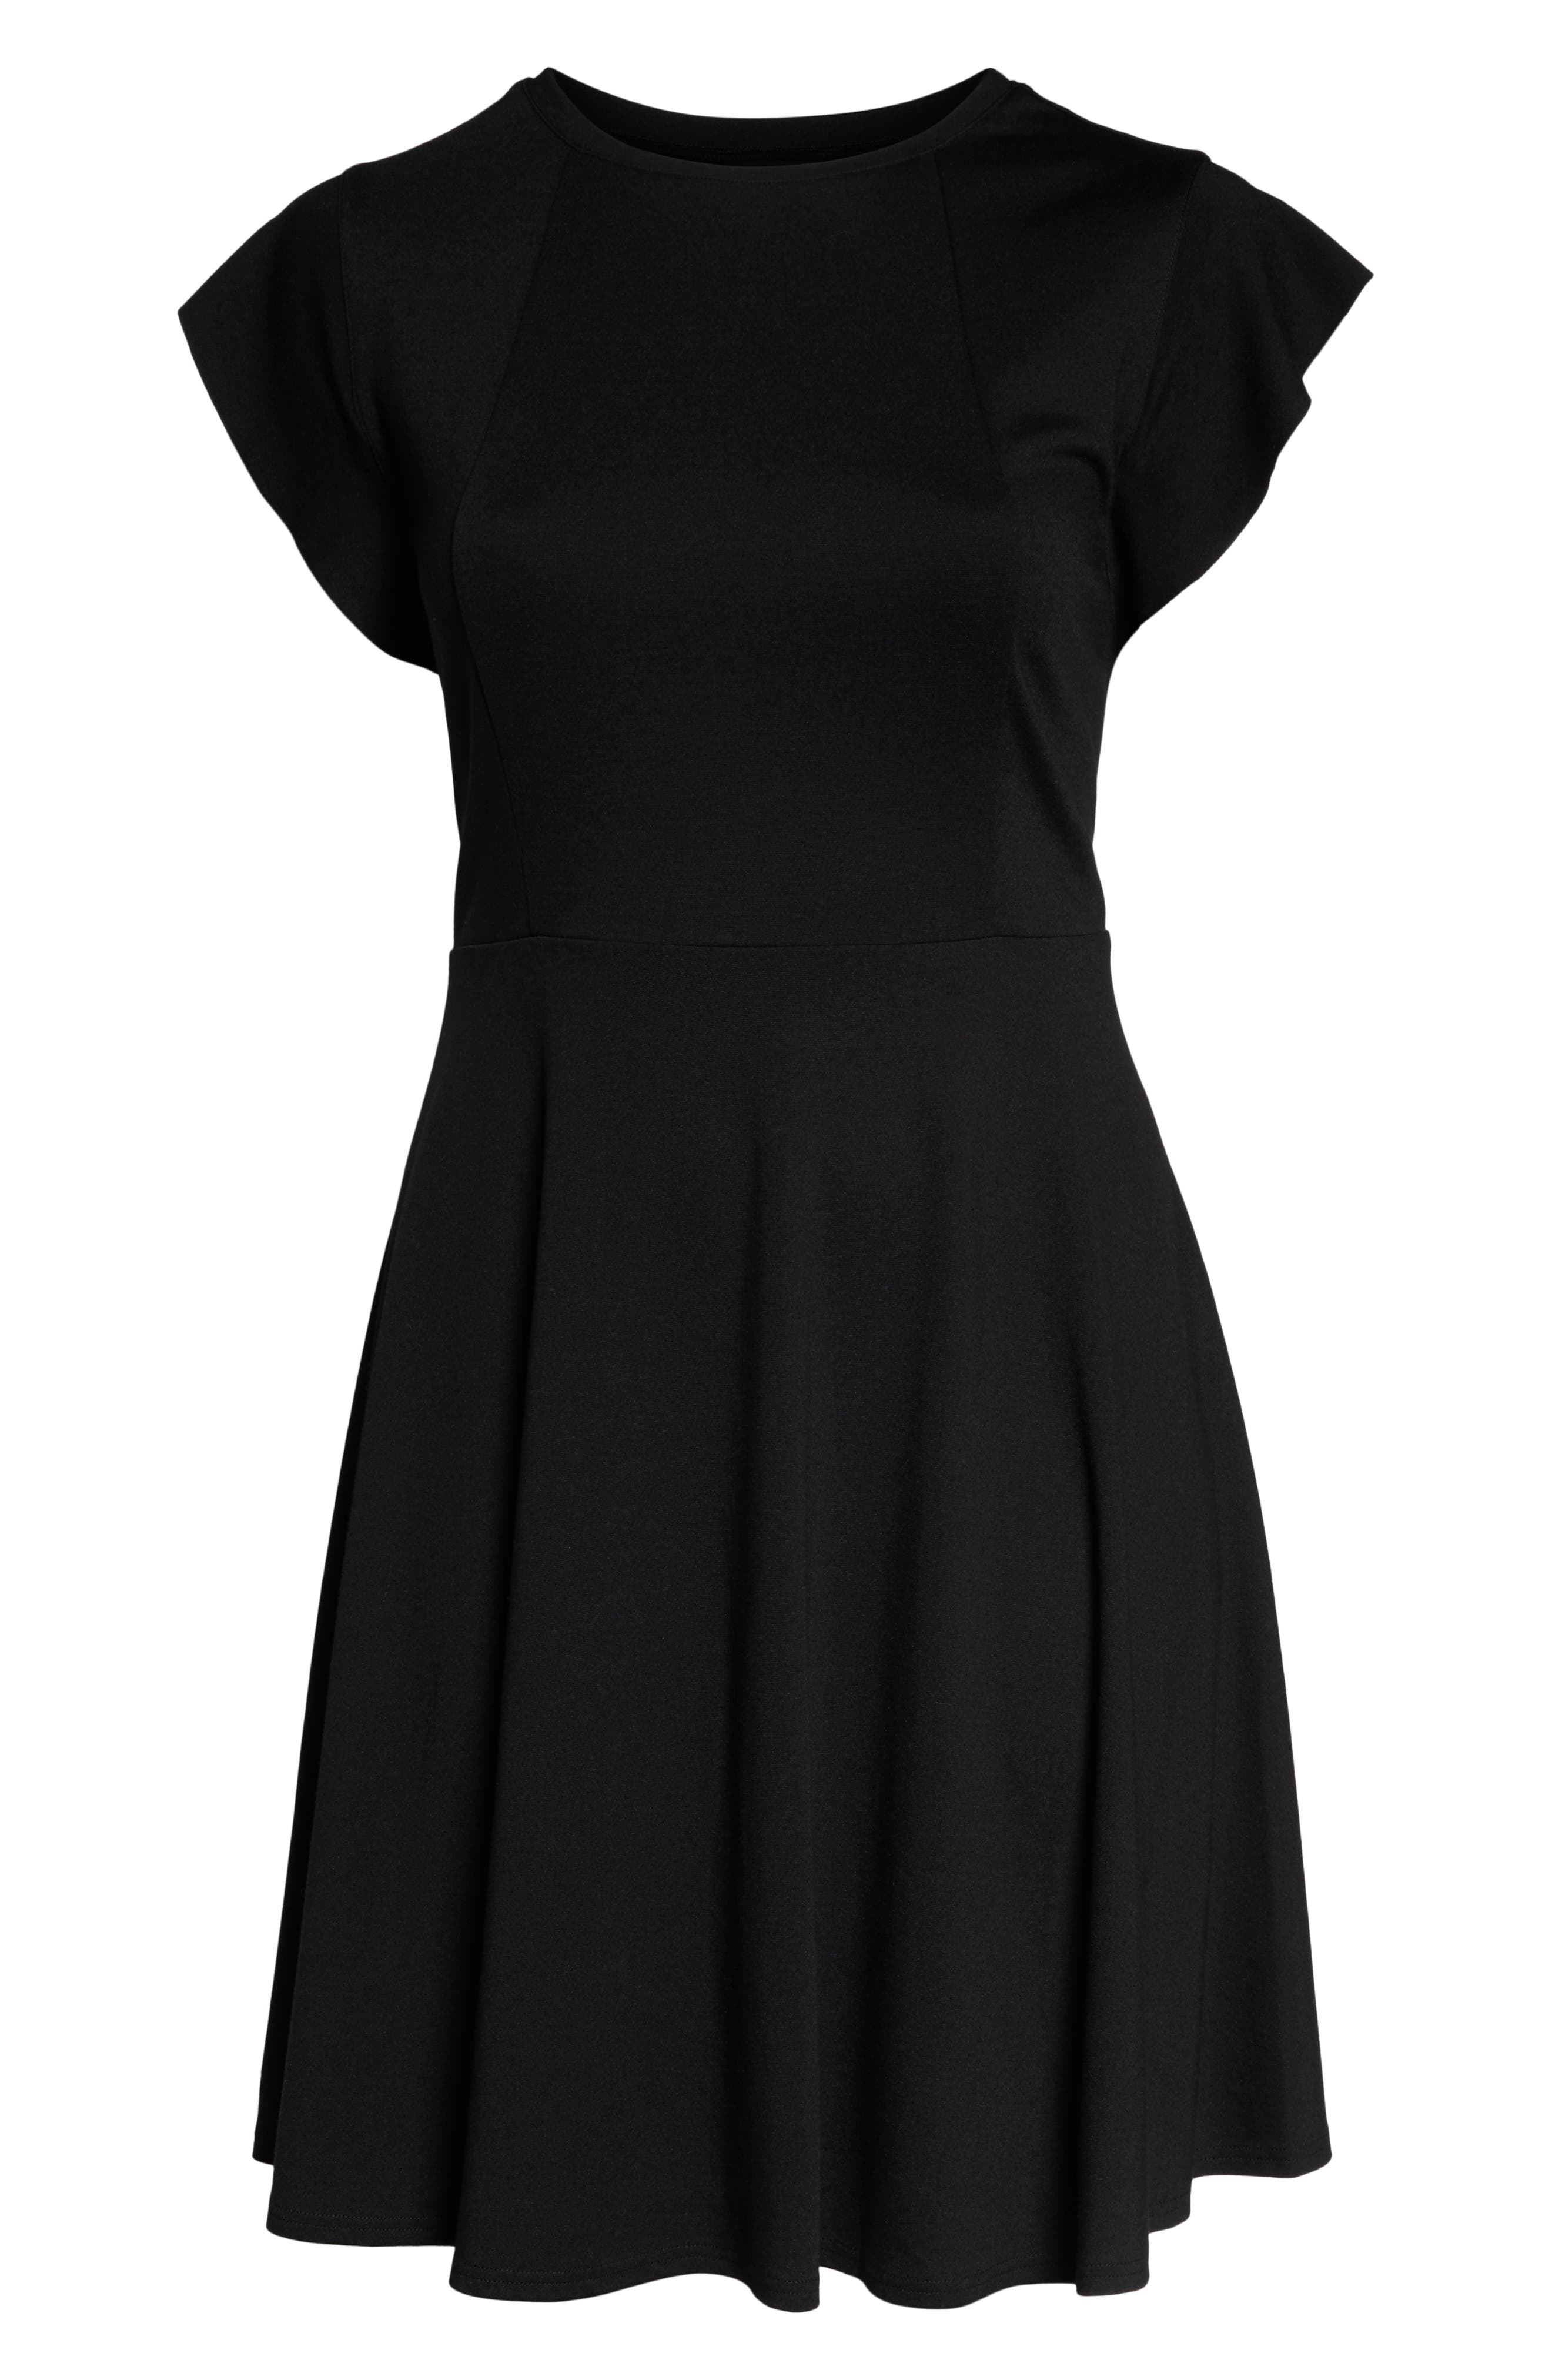 CITY CHIC,                             Frill Sleeve Fit & Flare Dress,                             Alternate thumbnail 4, color,                             BLACK